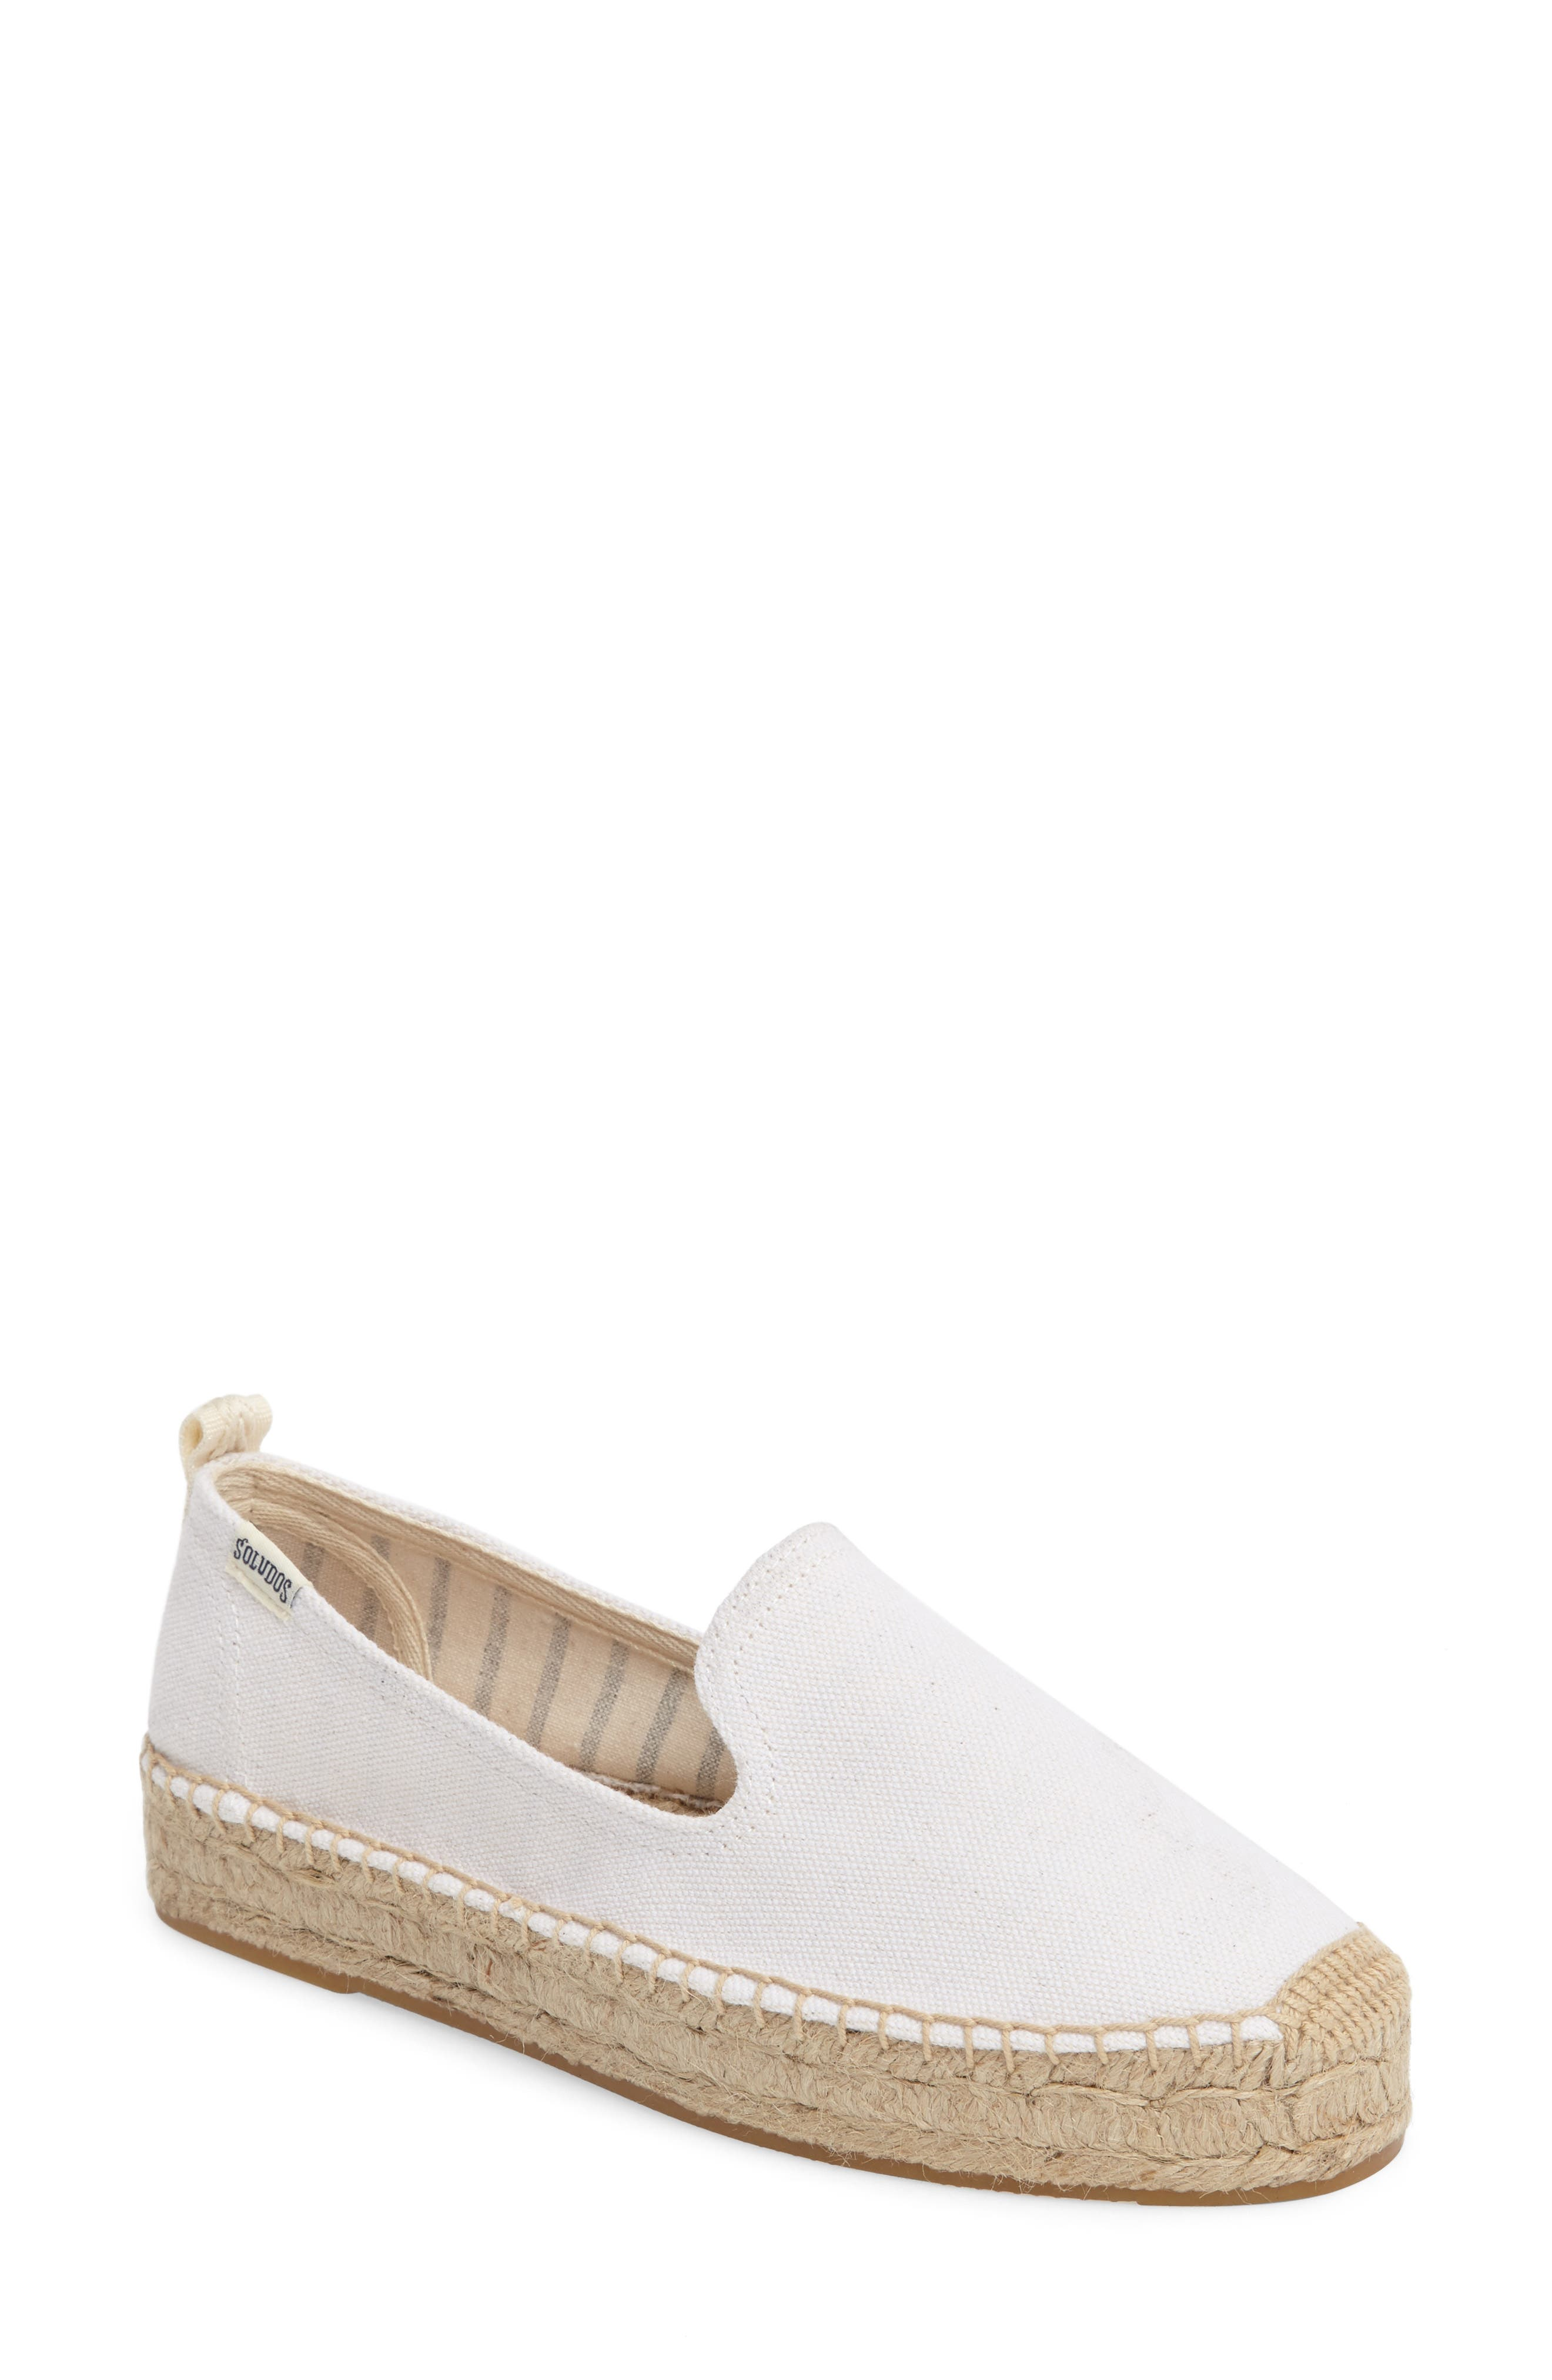 soludos shoes nordstrom